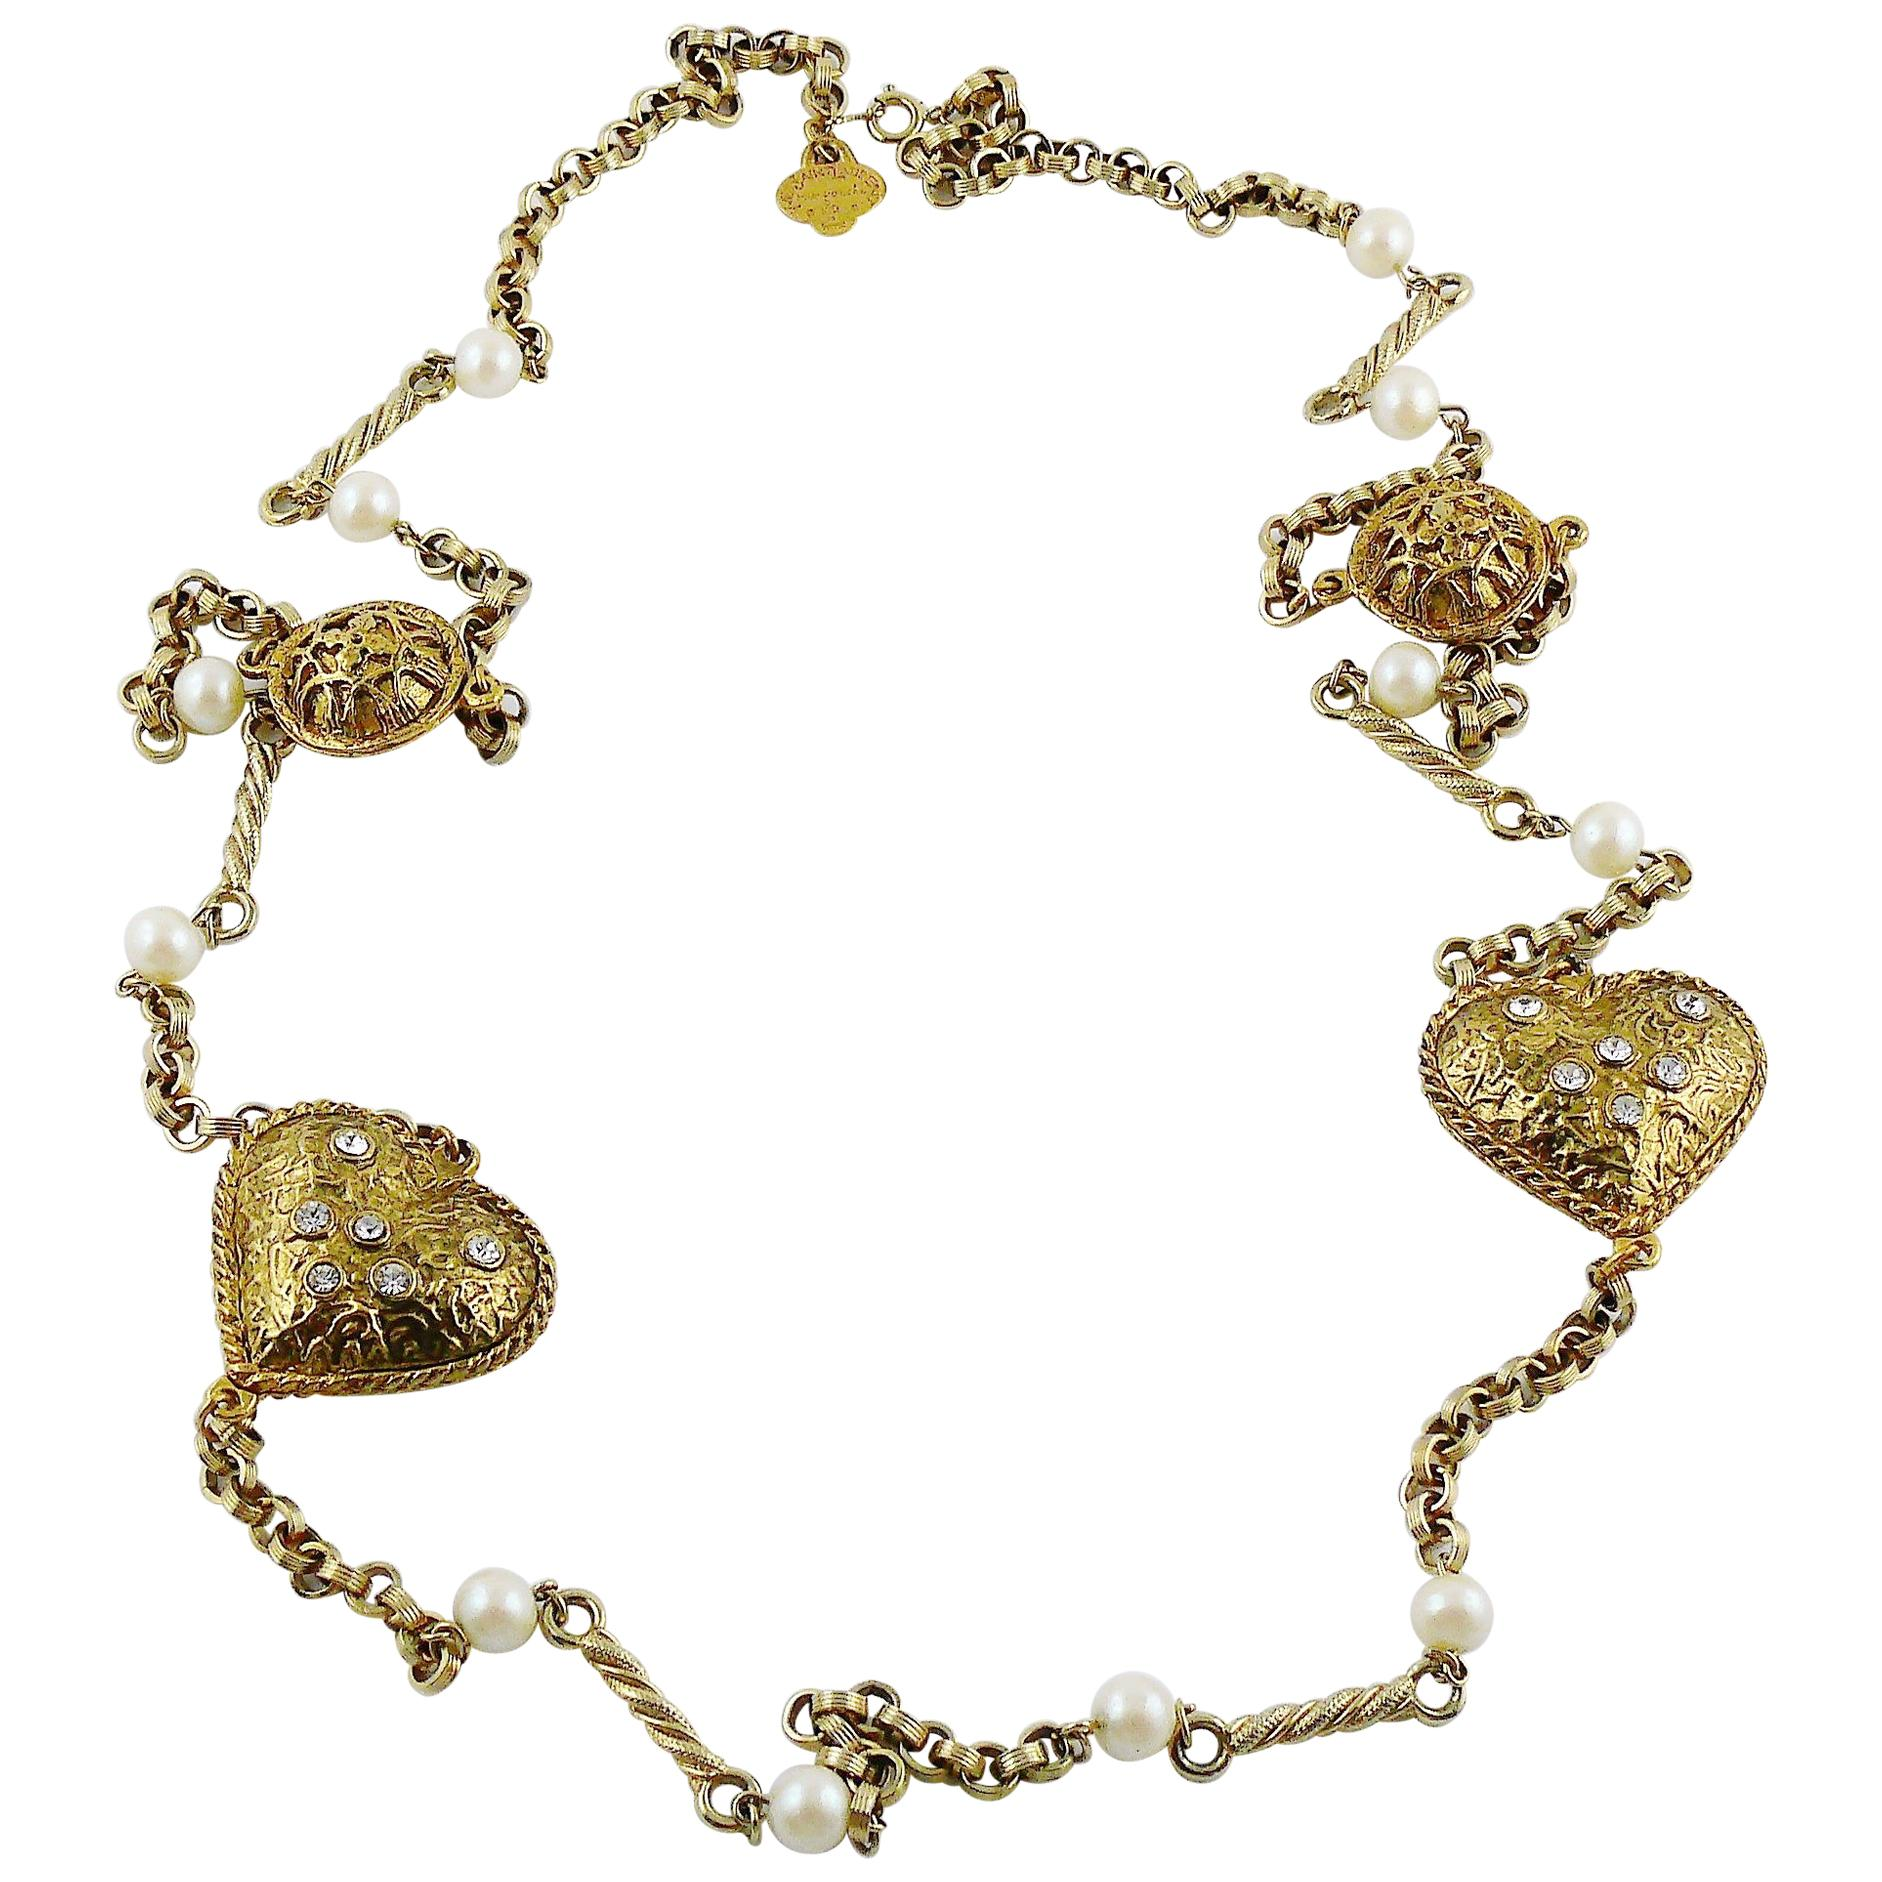 fa7e9eeb1a7 Vintage Yves Saint Laurent Necklaces - 213 For Sale at 1stdibs